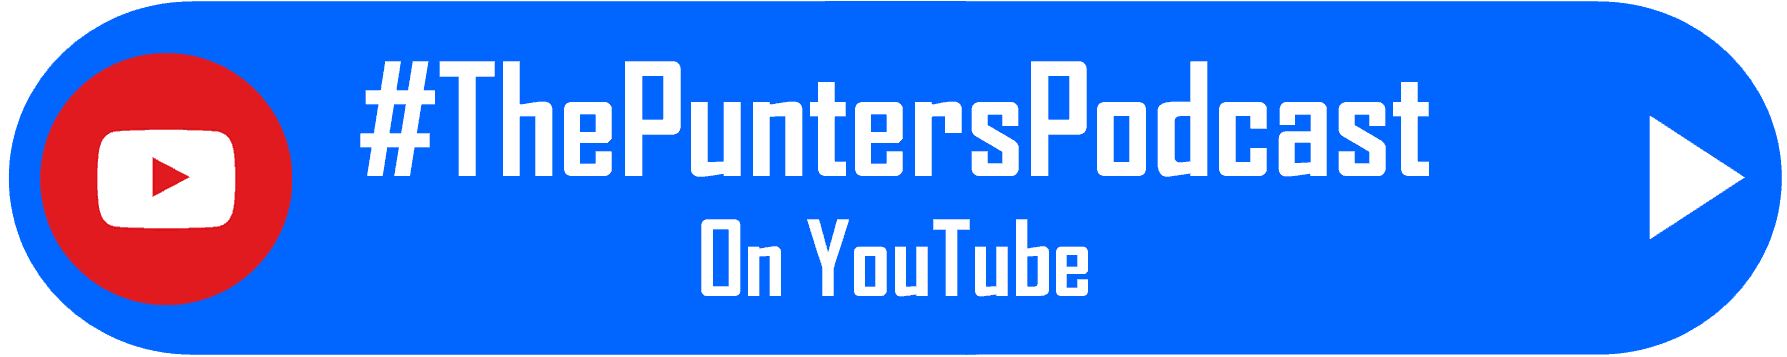 #ThePuntersPodcast On YouTube